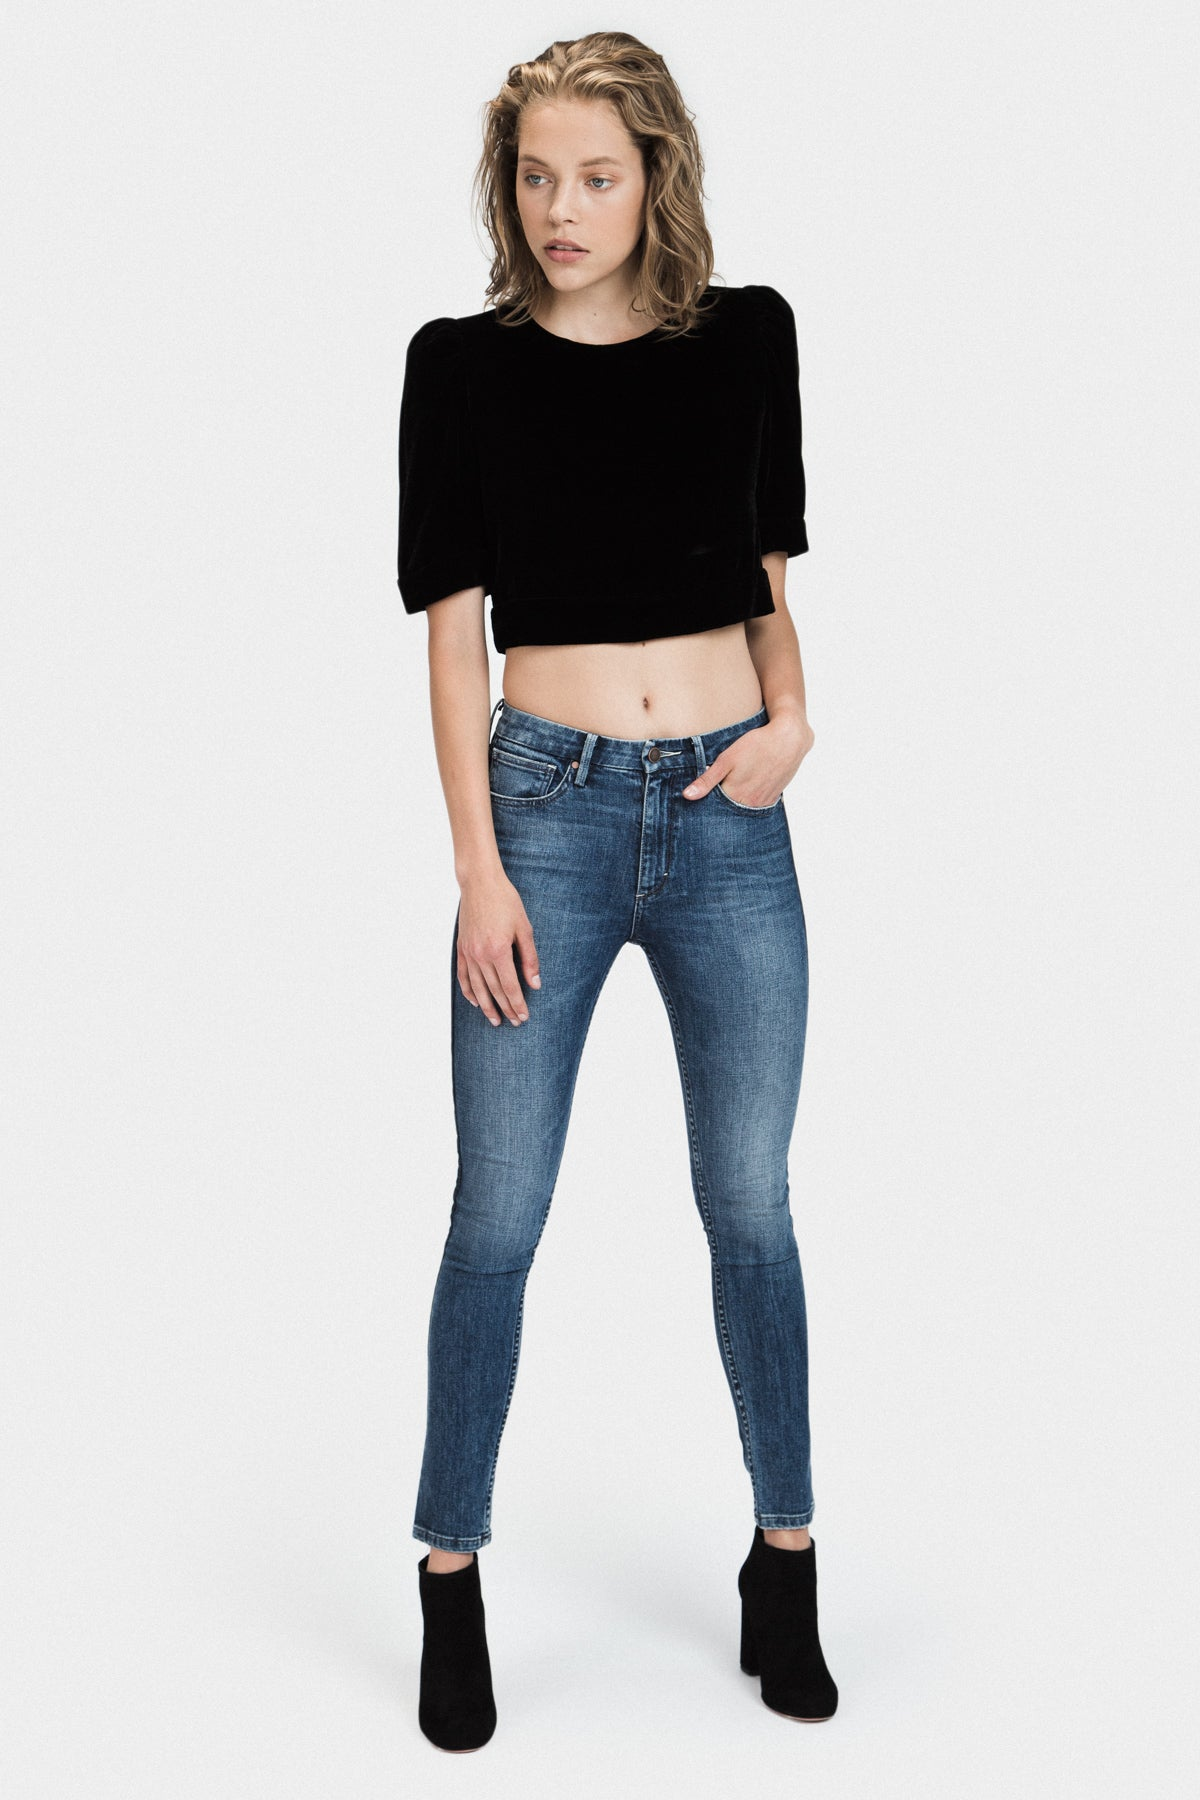 PUFF SLEEVE VELVET CROP TOP IN BLACK - FRANKIE